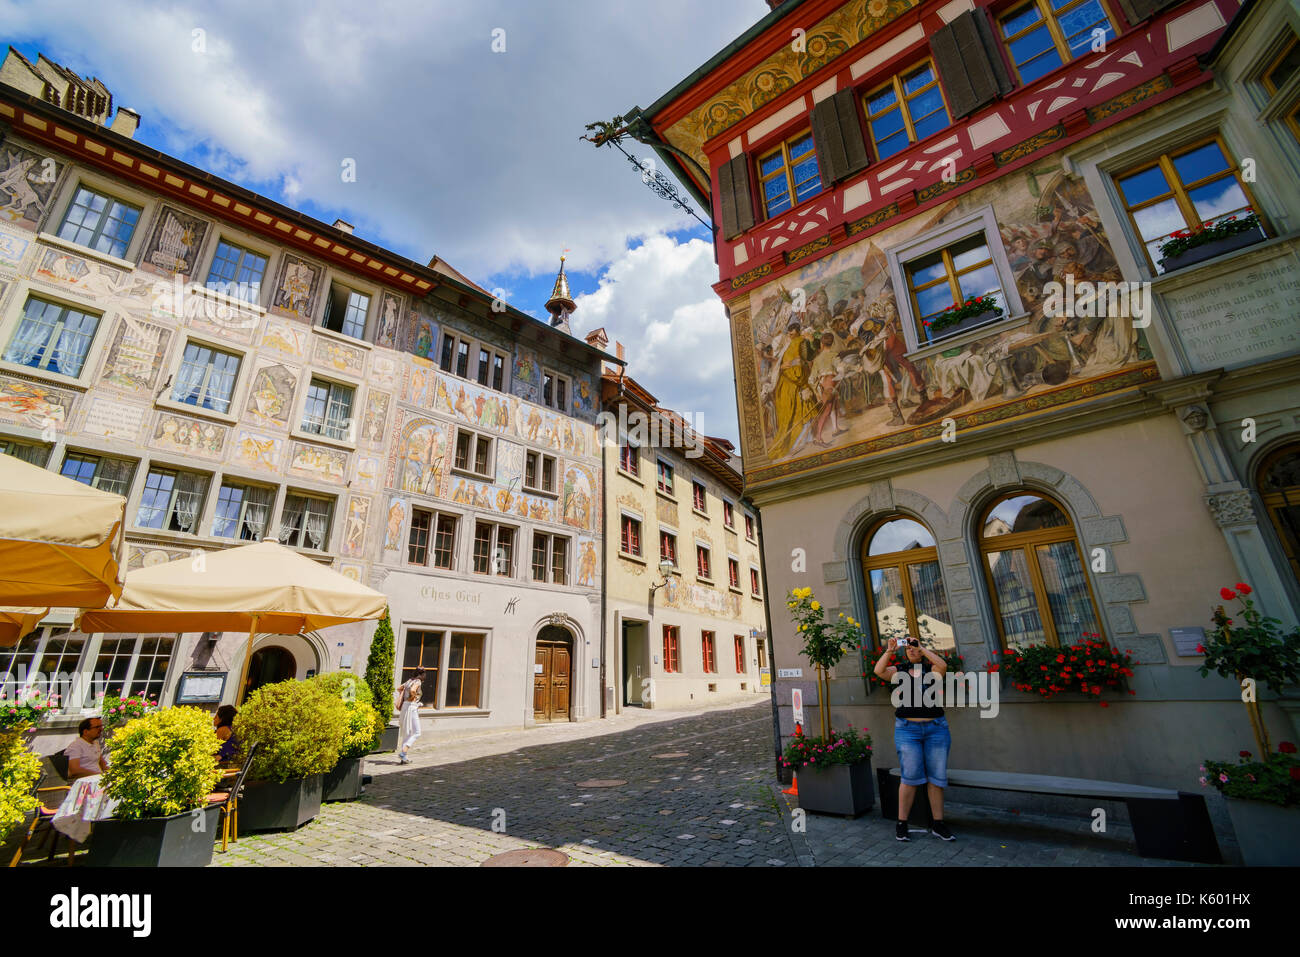 Schaffhausen, JUL 15: House Painted with Frescoes. The beautiful Stein am Rhein is a historic town and a municipality Stock Photo